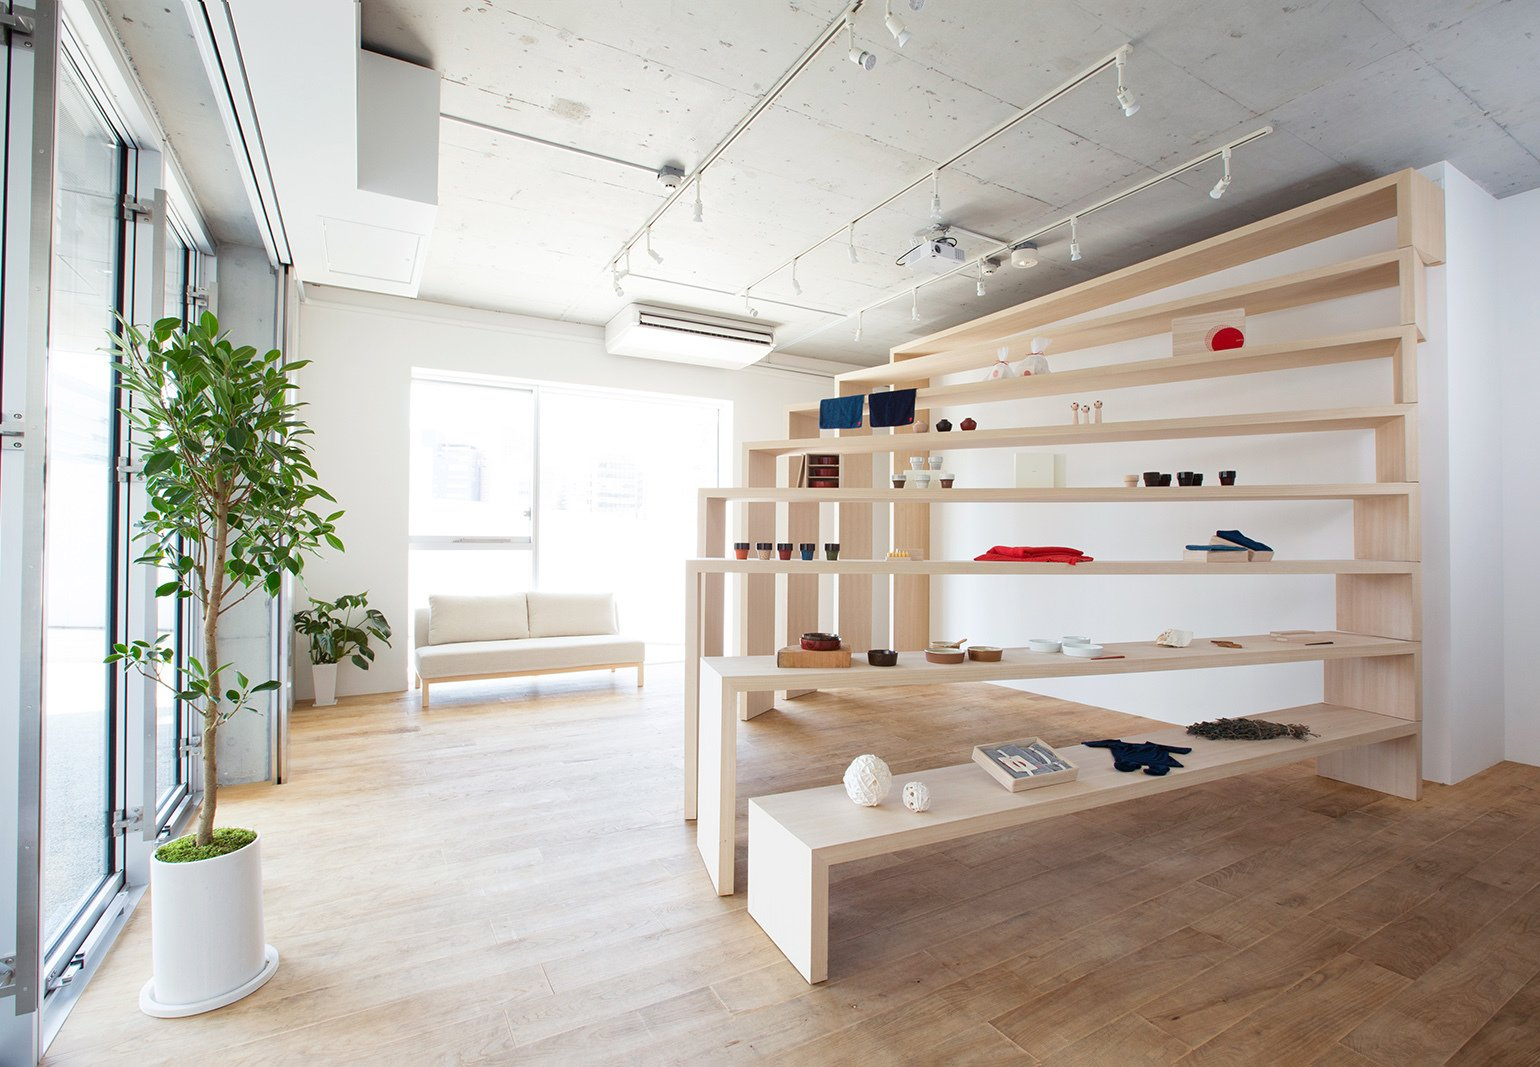 A space saving flexible retail design in japan collection for Retail space design